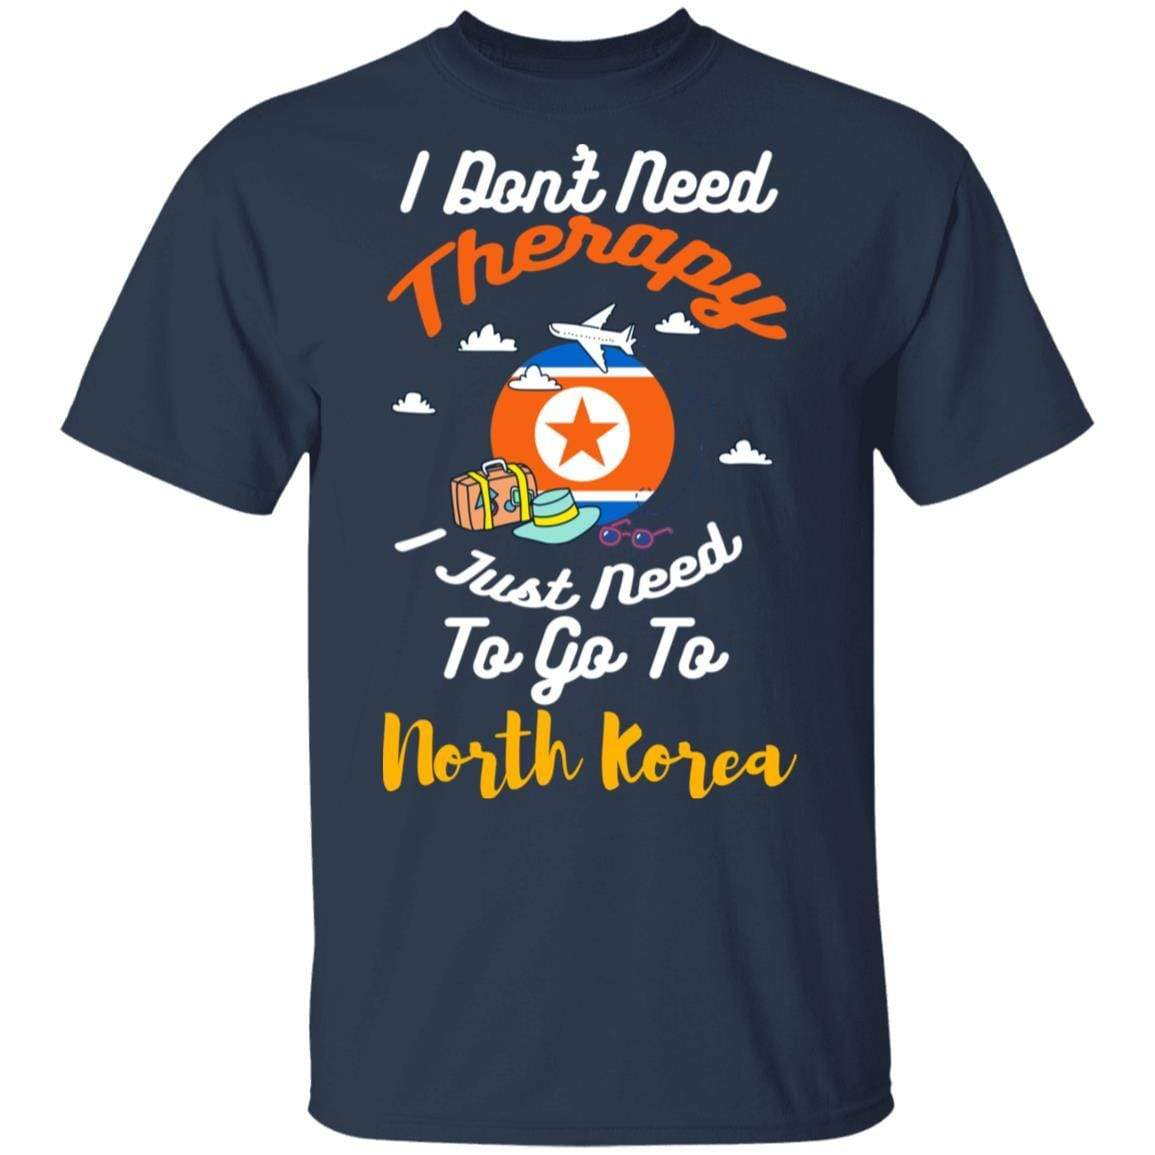 I Don't Need Therapy I Just Need To Go To North Korea T-Shirts, Hoodies 1049-9966-87589183-48248 - Tee Ript